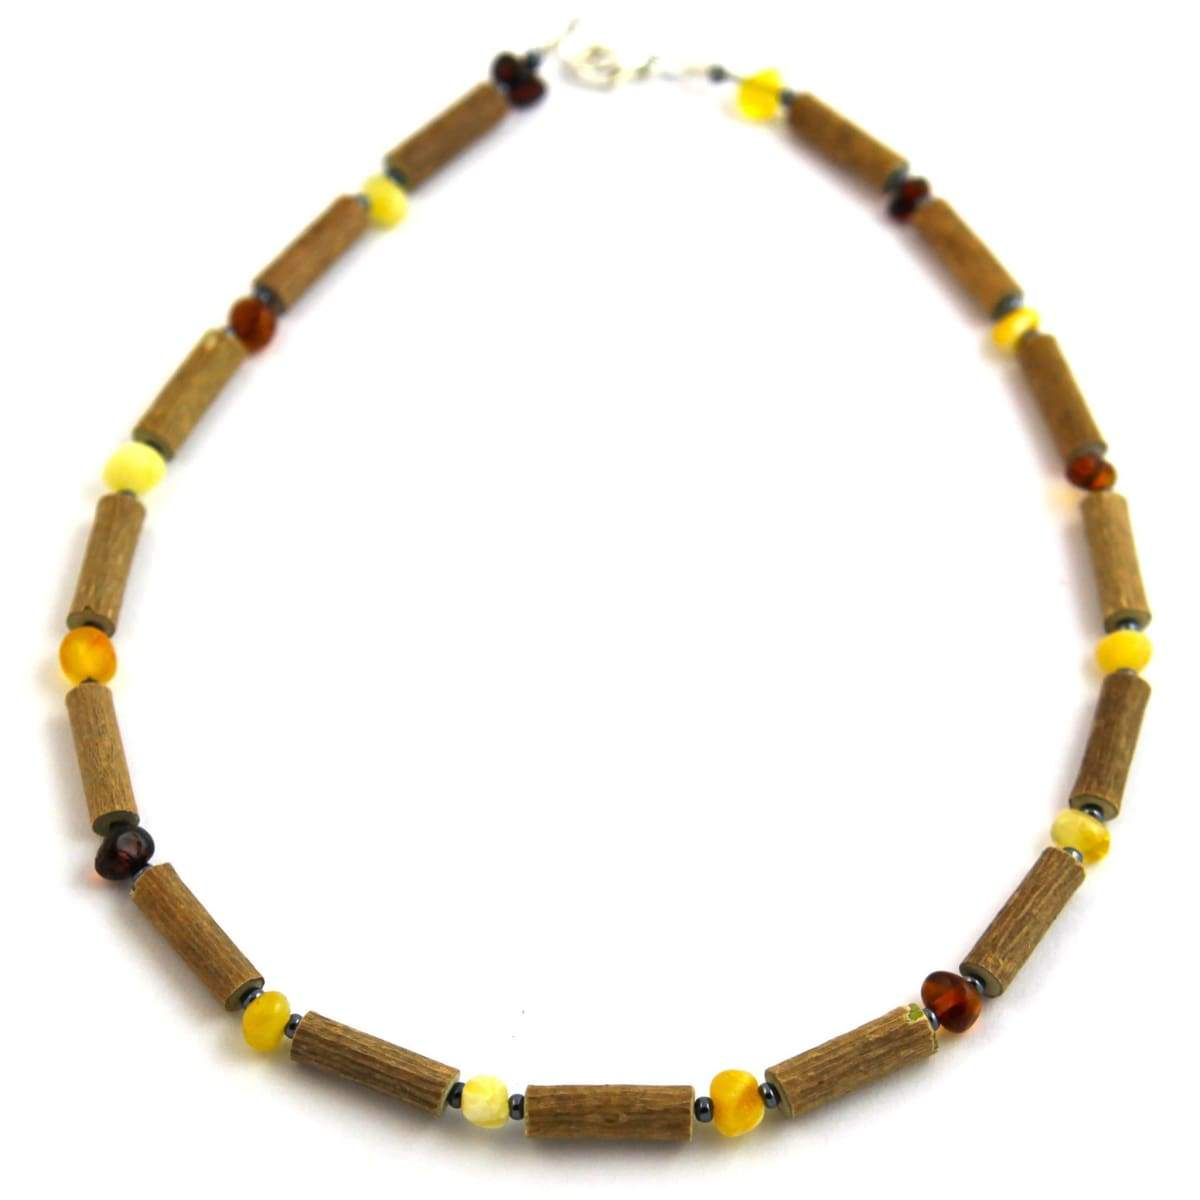 Hazel-Amber Multicolored - 11 Necklace - Lobster Claw Clasp - Hazelwood & Baltic Amber Jewelry